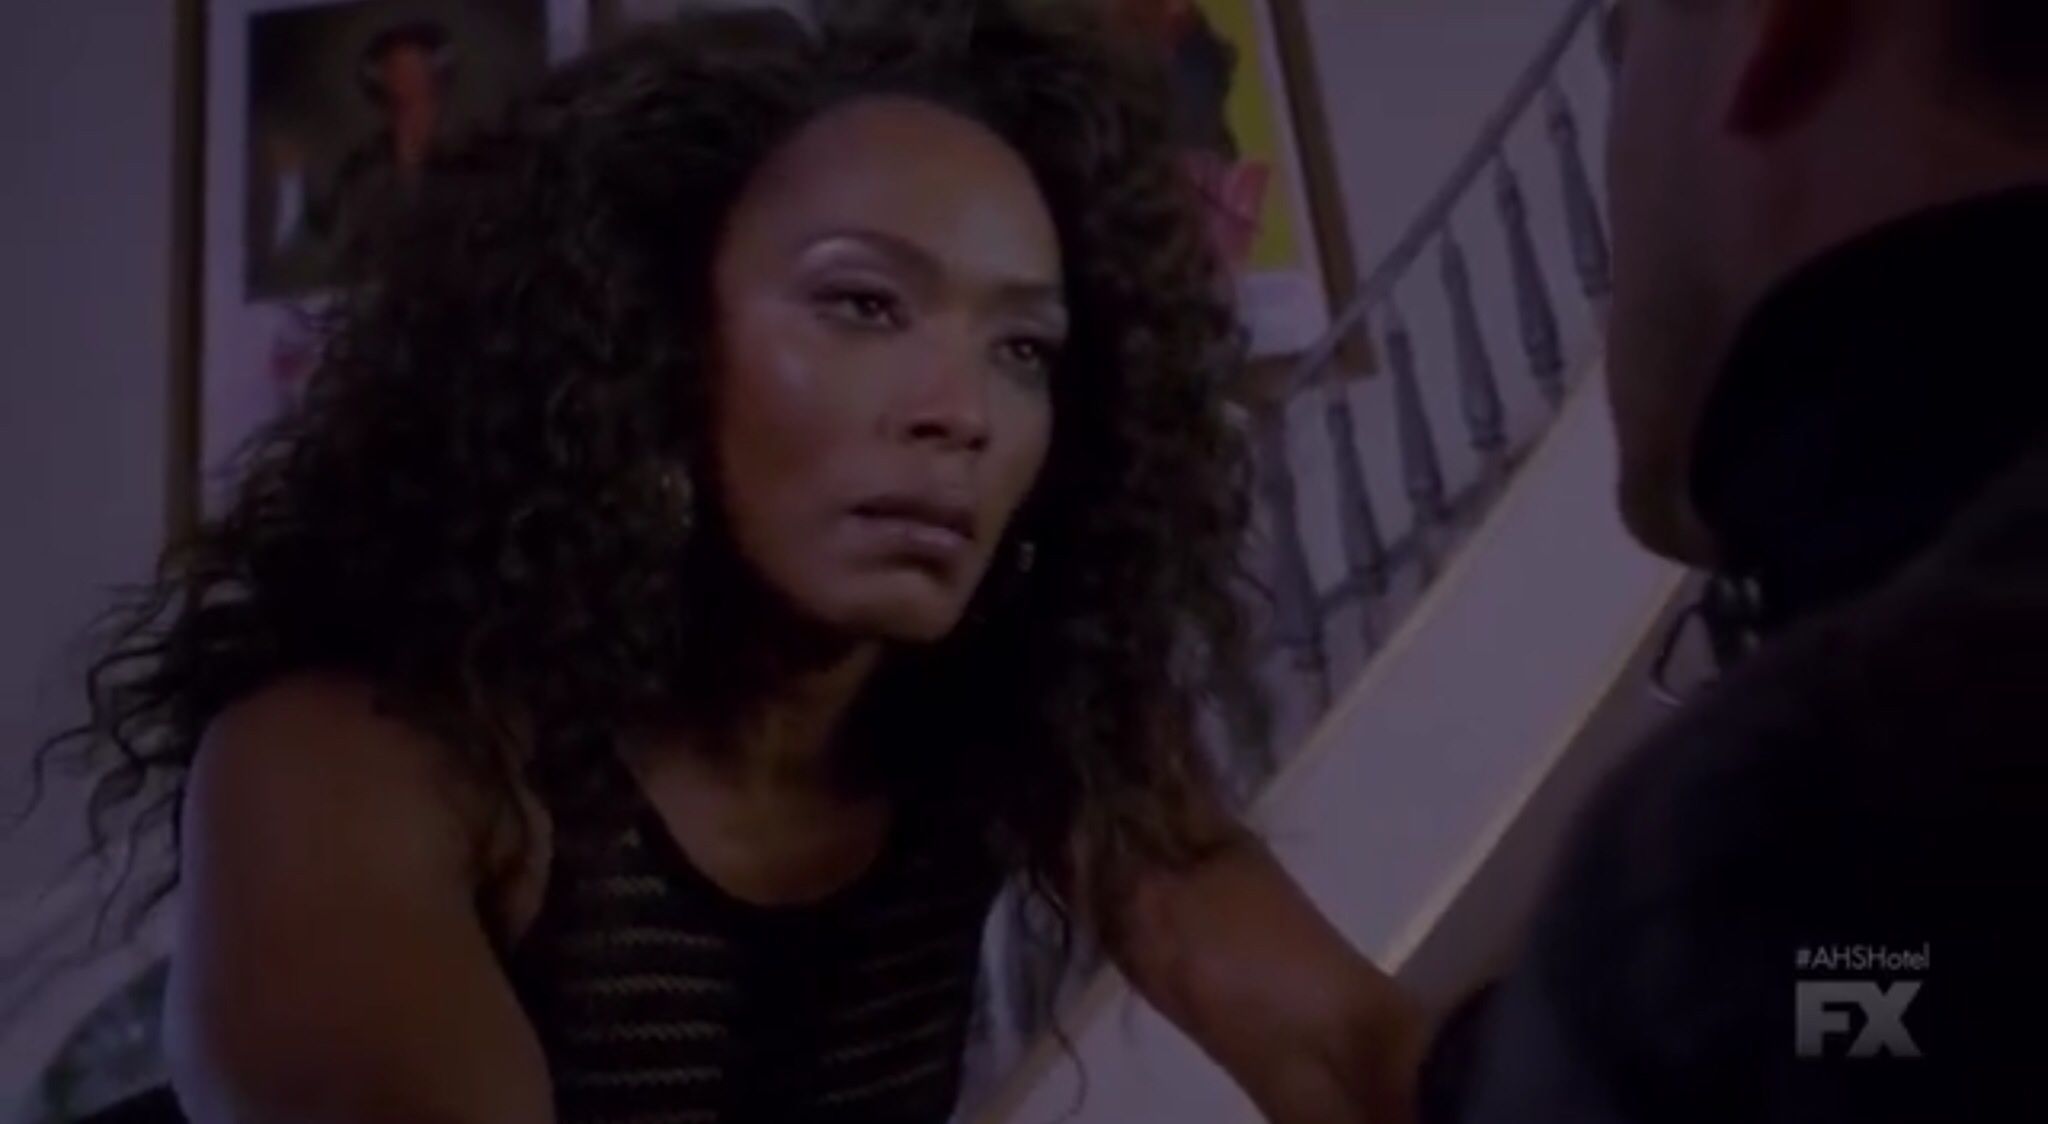 American Horror Story: Hotel Episode 3 Recap: Don't Tell Mama